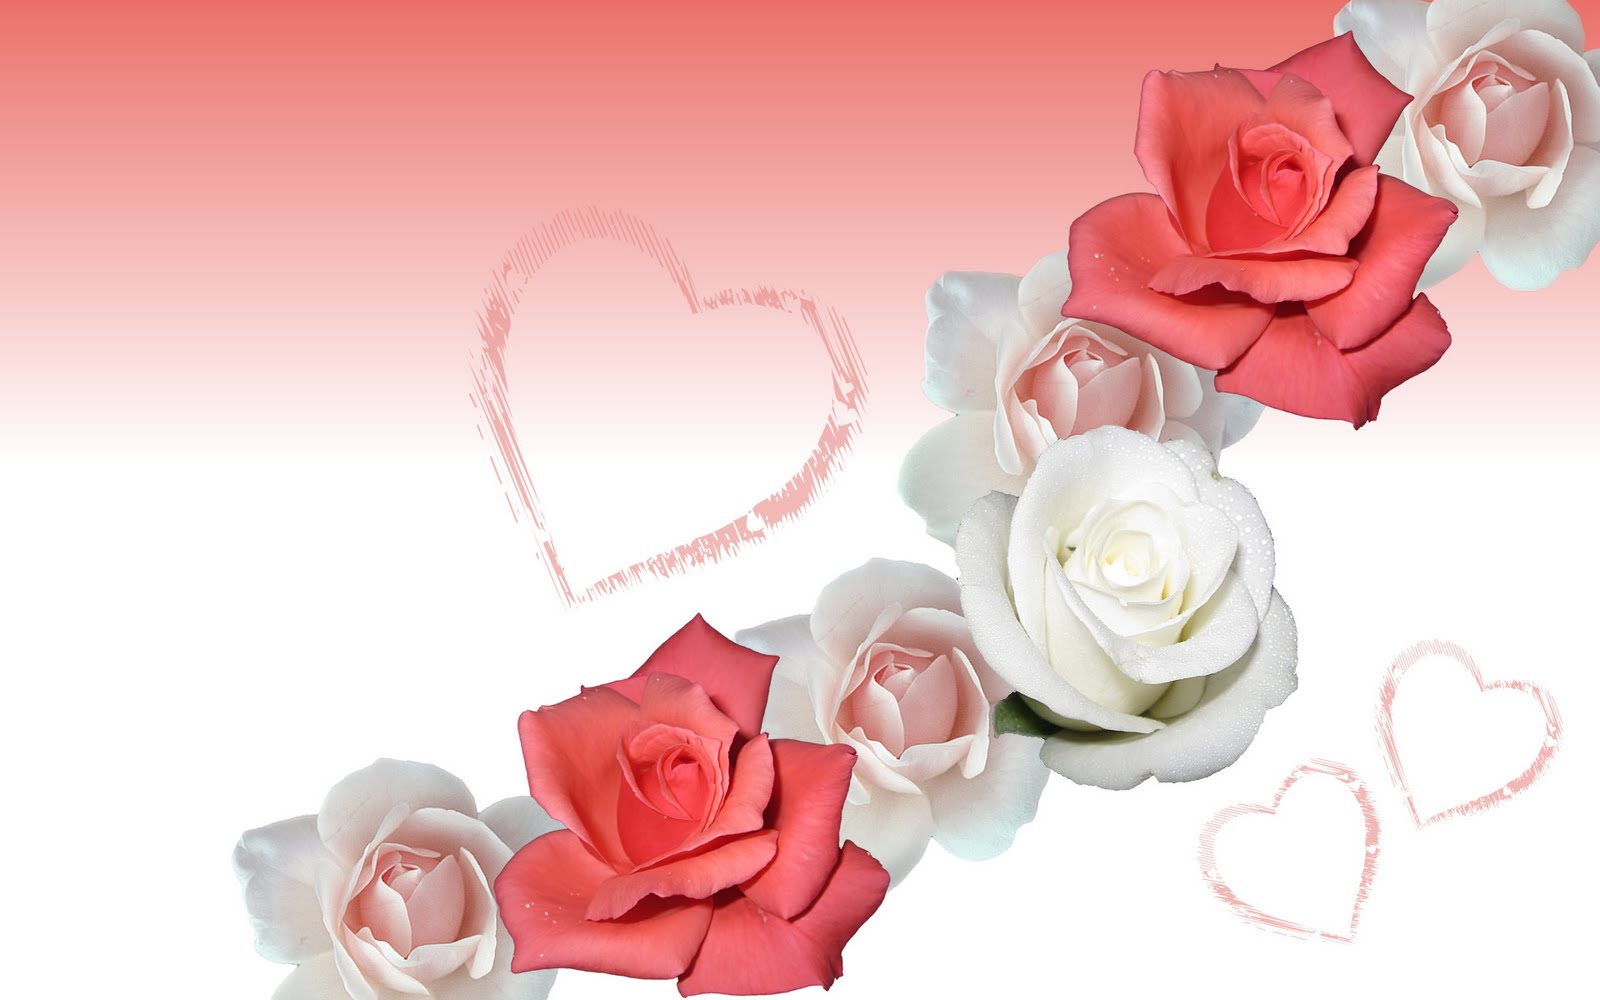 Wonderful Wallpaper Name Neha - Loving-White+-Rose+-Wallpapers  Perfect Image Reference_113110.jpg